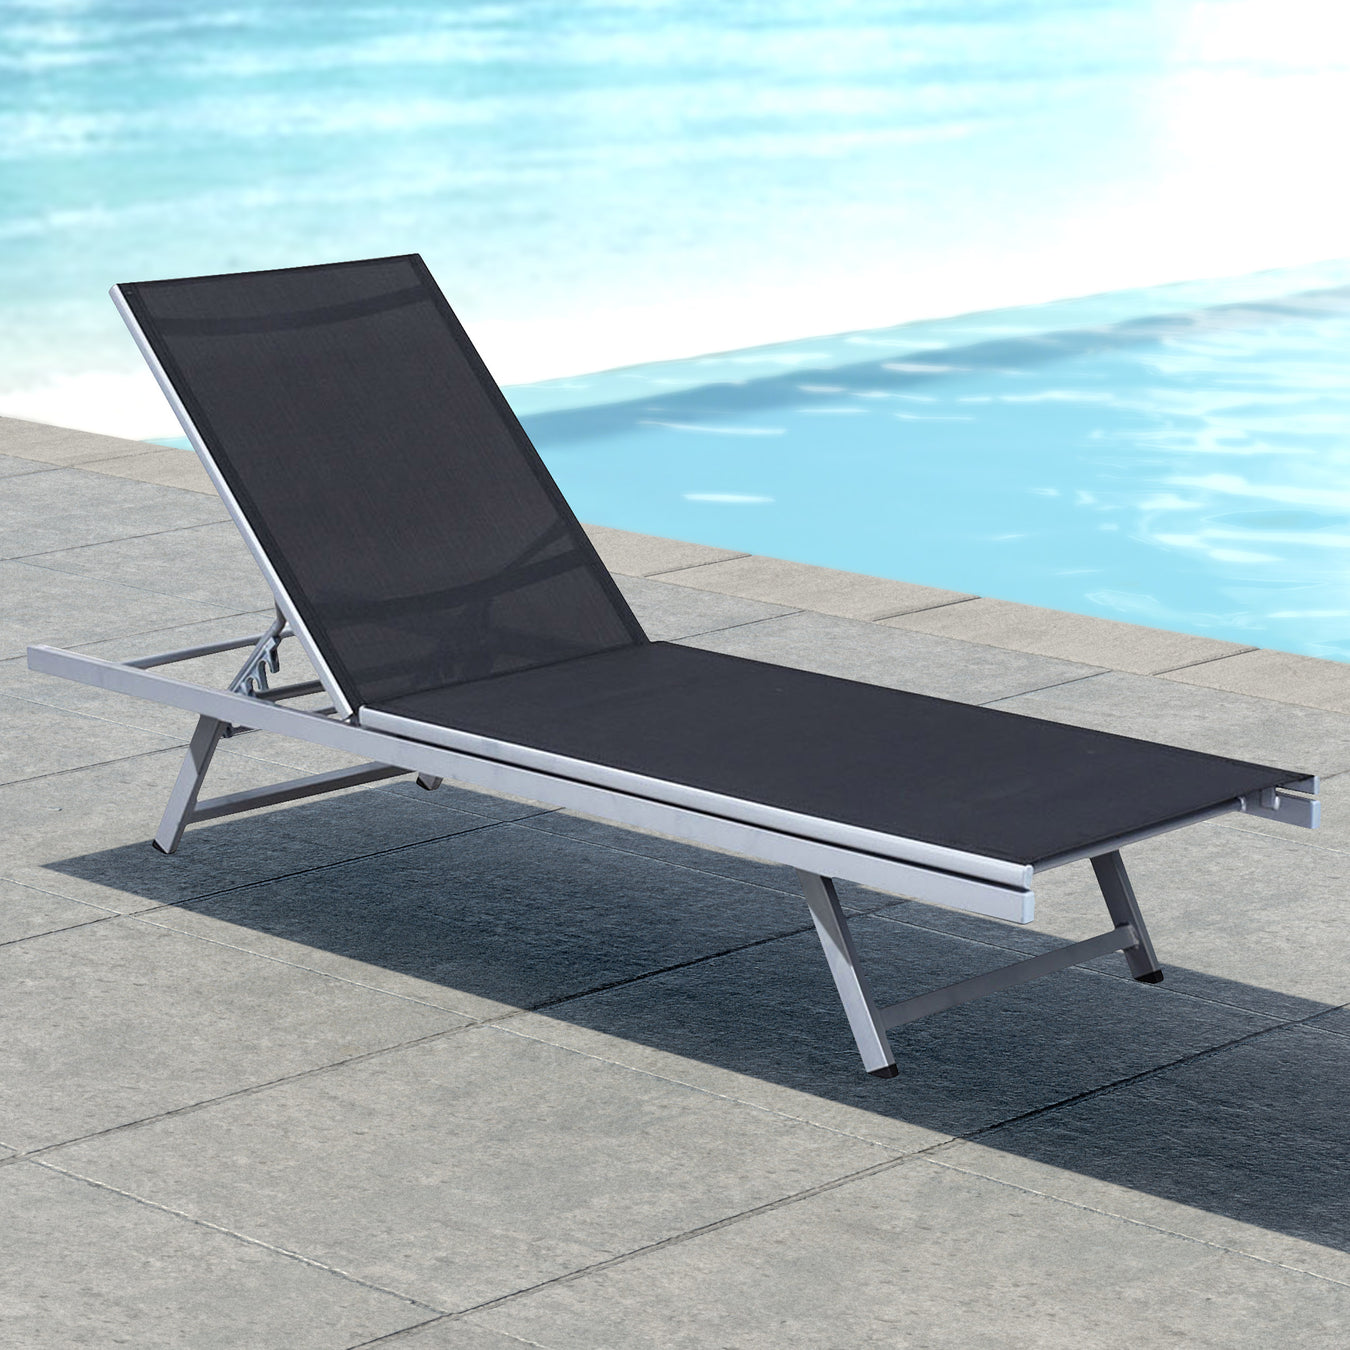 Outdoor lounger chairs